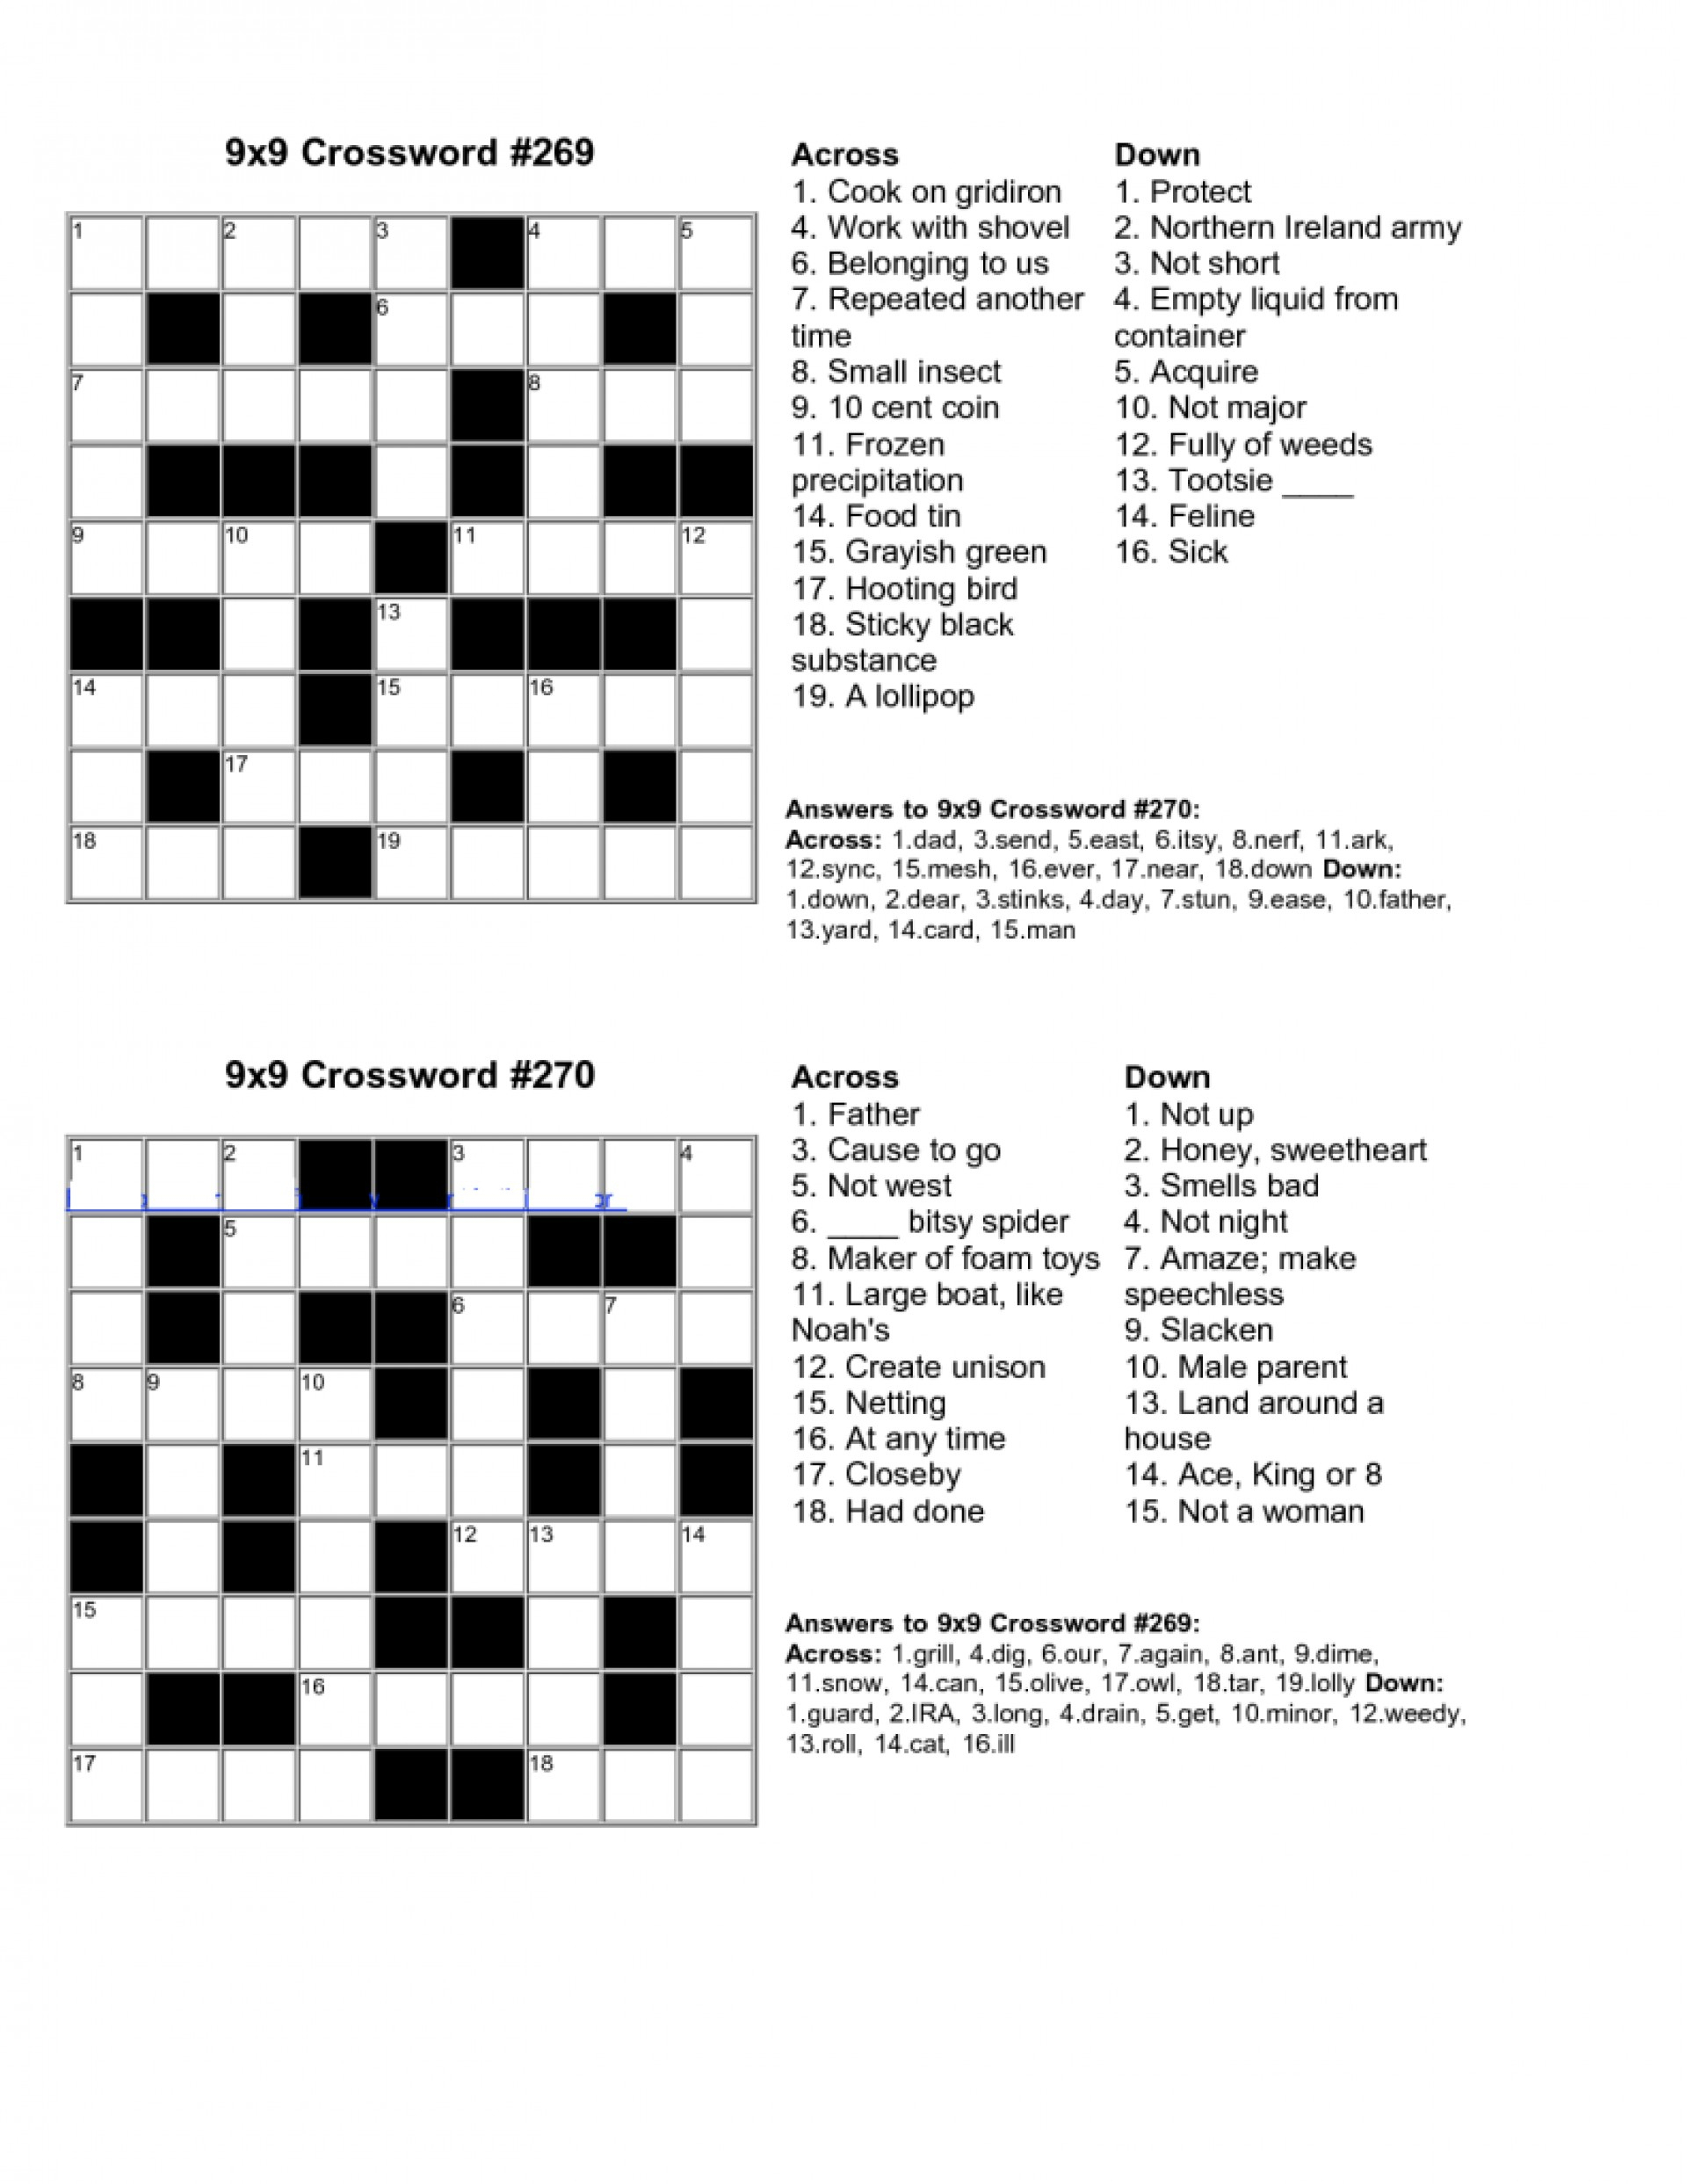 Free Crossword Puzzle Maker Printable | Free Printables - Free Crossword Puzzle Maker Printable 50 Words